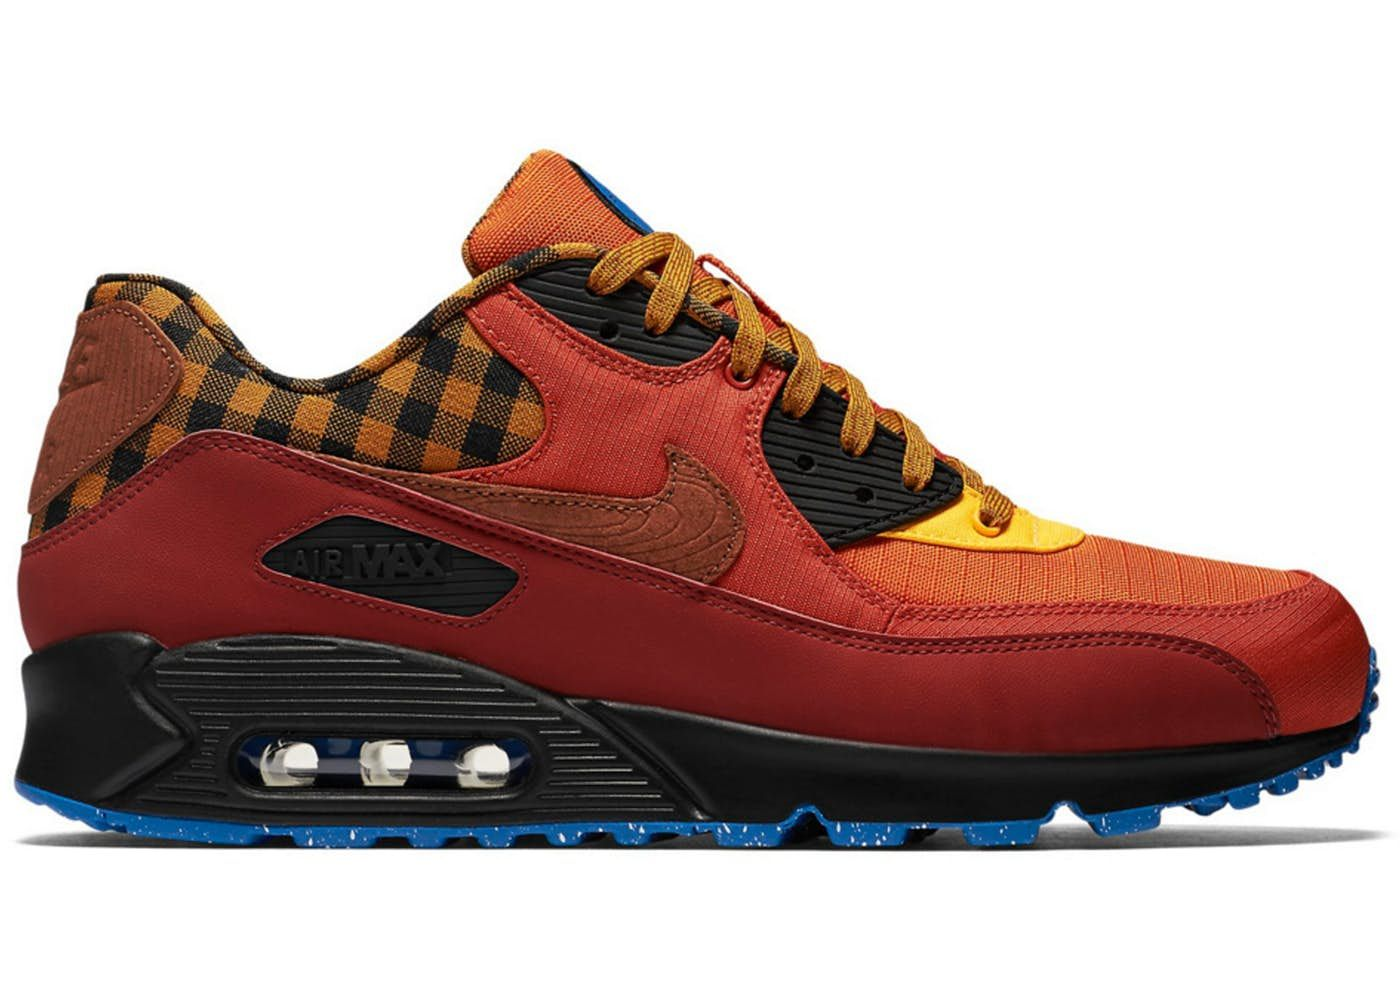 Nike 90 Campfire Pack in 2019 | Nike air max 90s, Air max